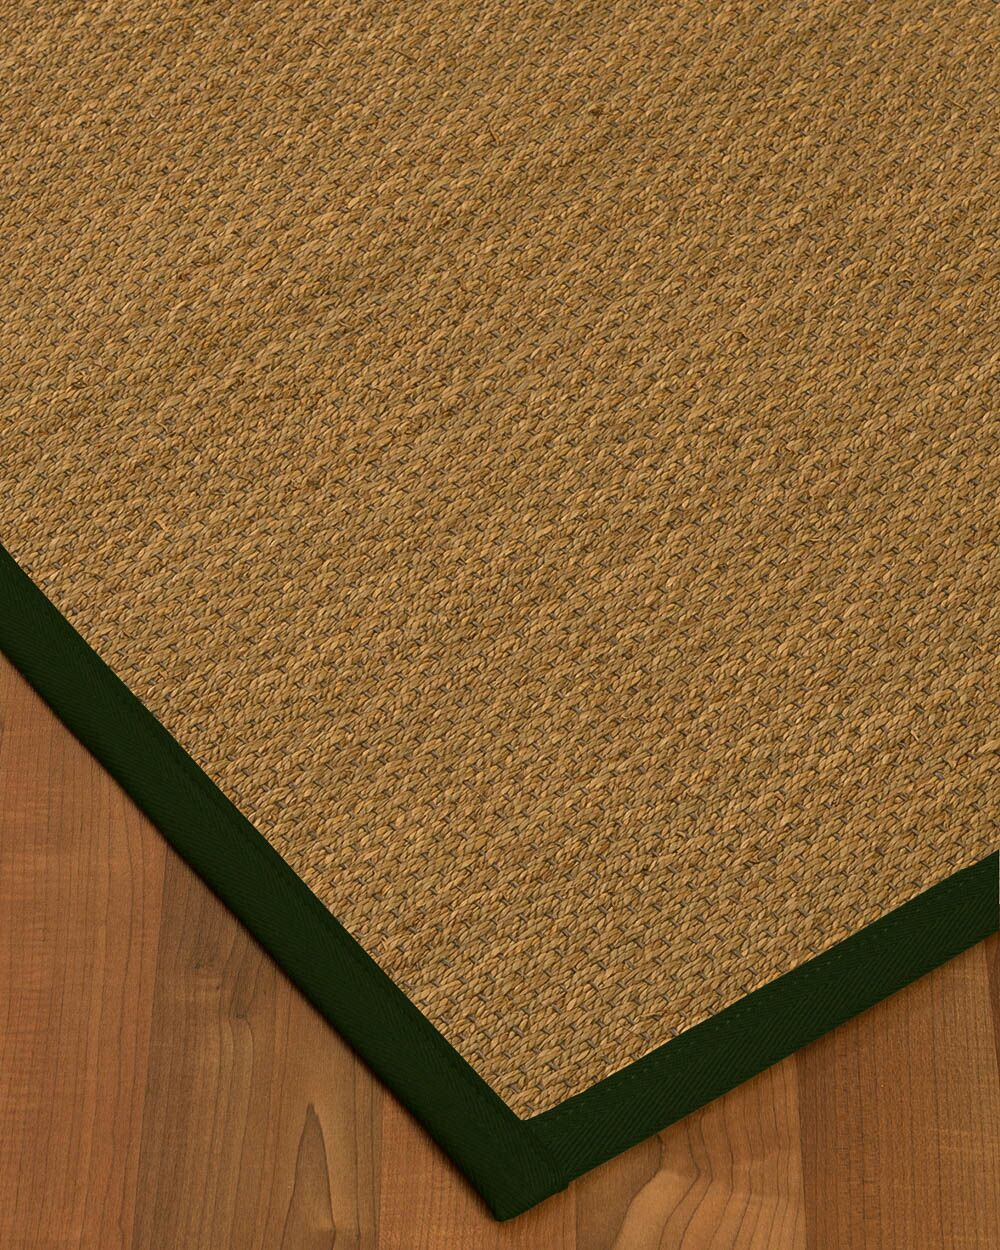 Chavis Border Hand-Woven Beige/Moss Area Rug Rug Size: Rectangle 9' x 12', Rug Pad Included: Yes